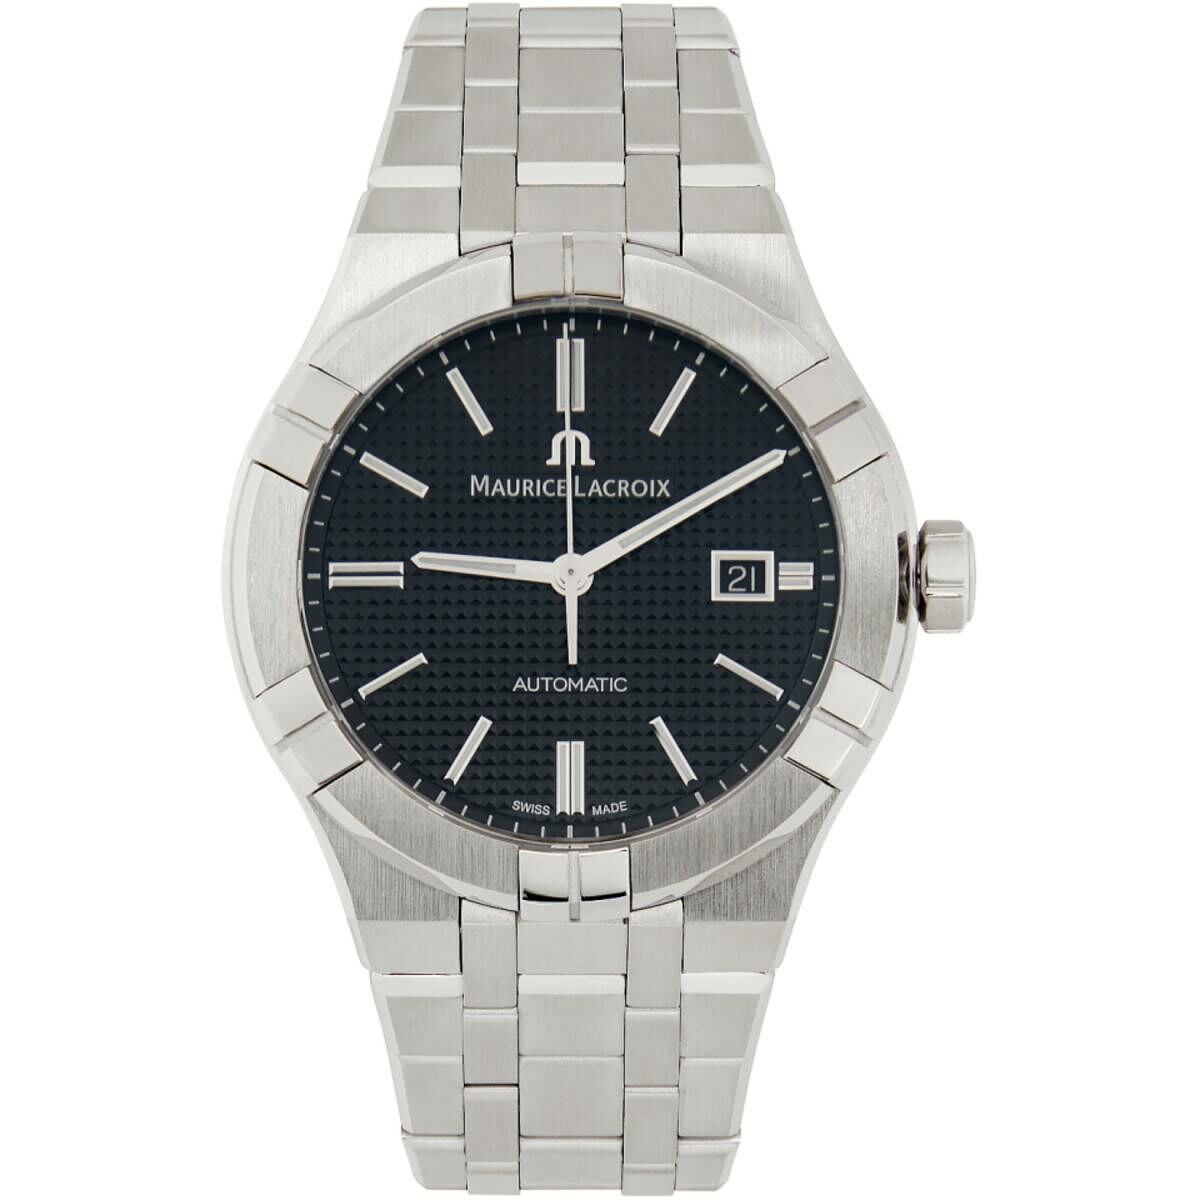 Maurice Lacroix Black and Silver Aikon Automatic Watch Ssense USA MEN Men ACCESSORIES Mens WATCHES